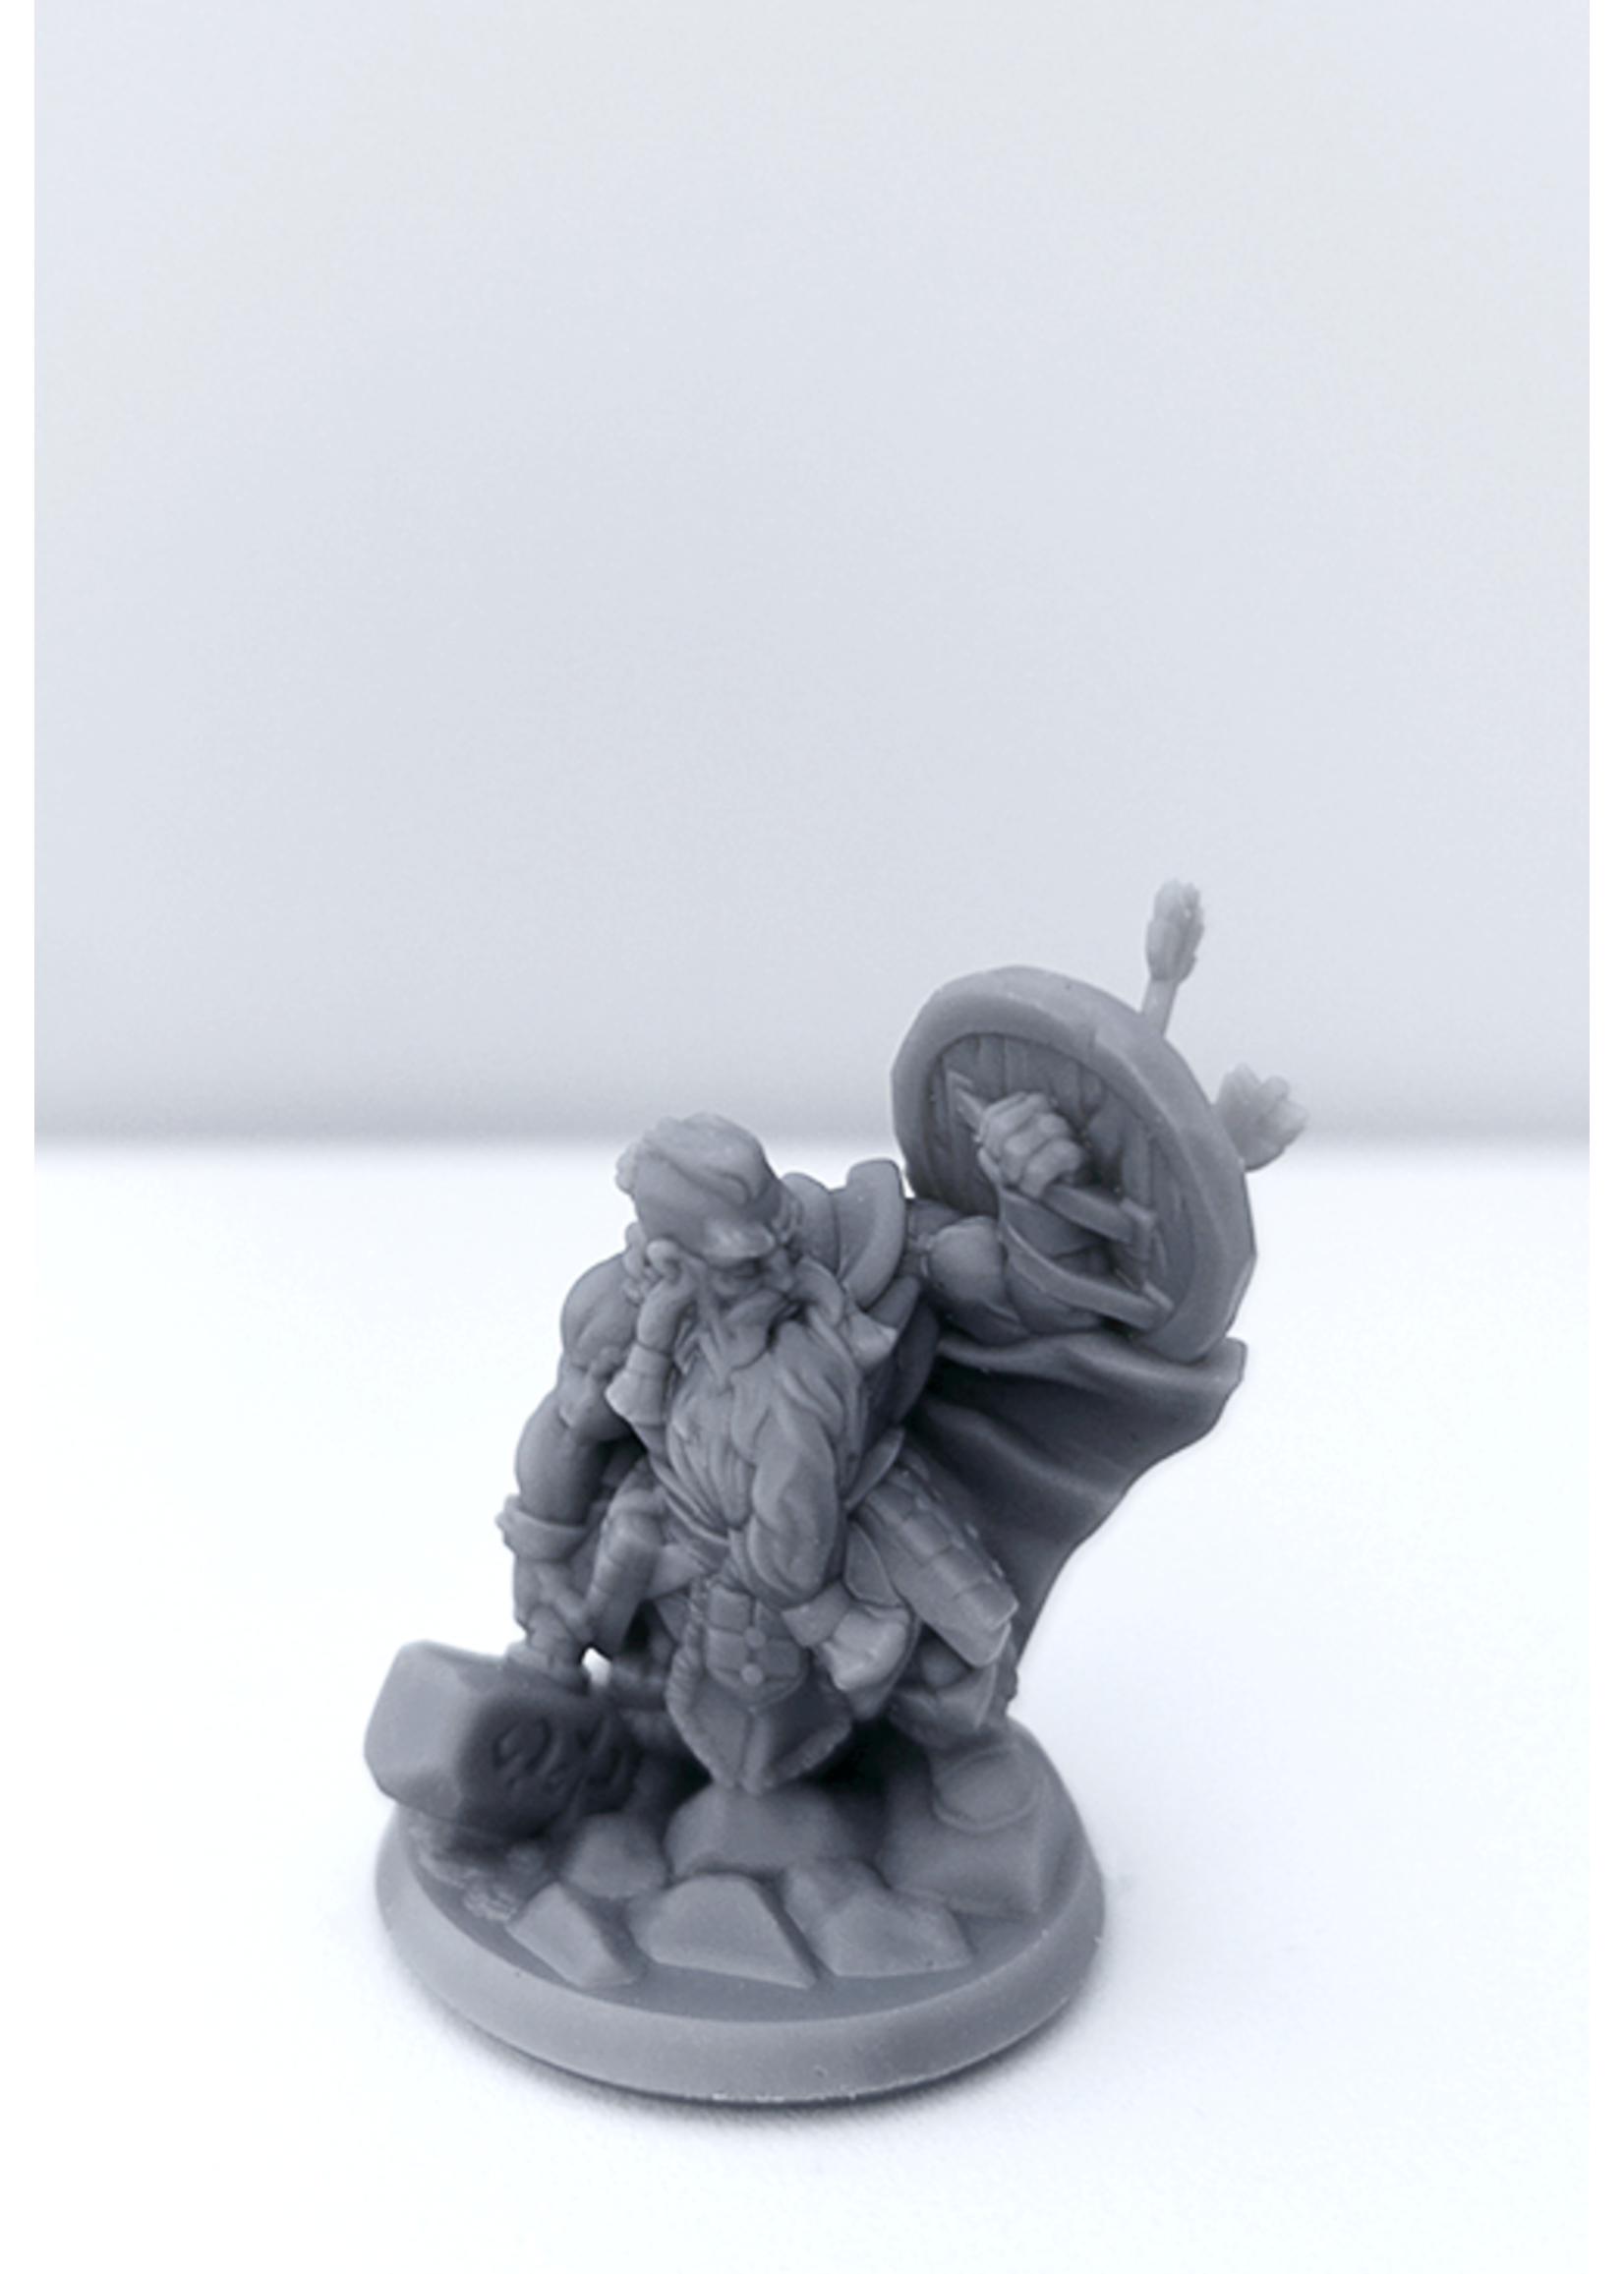 3D Printed Miniature - Dwarf Male 01 - Dungeons & Dragons - Hero of the Realm KS